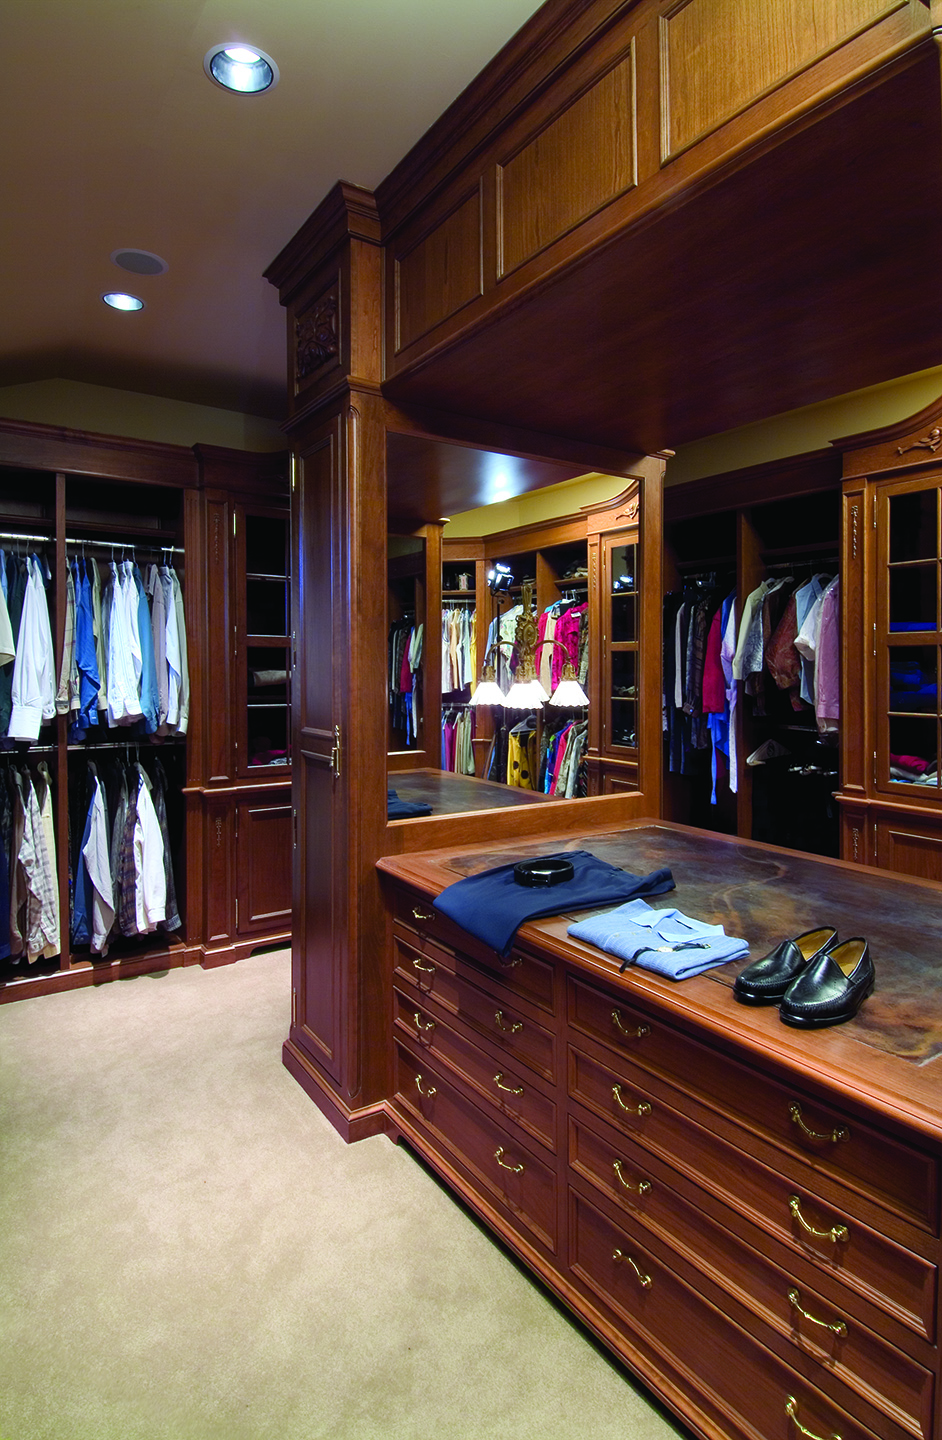 kitchen_bath_concepts_kbc_pittsburgh_closet_ca.jpg